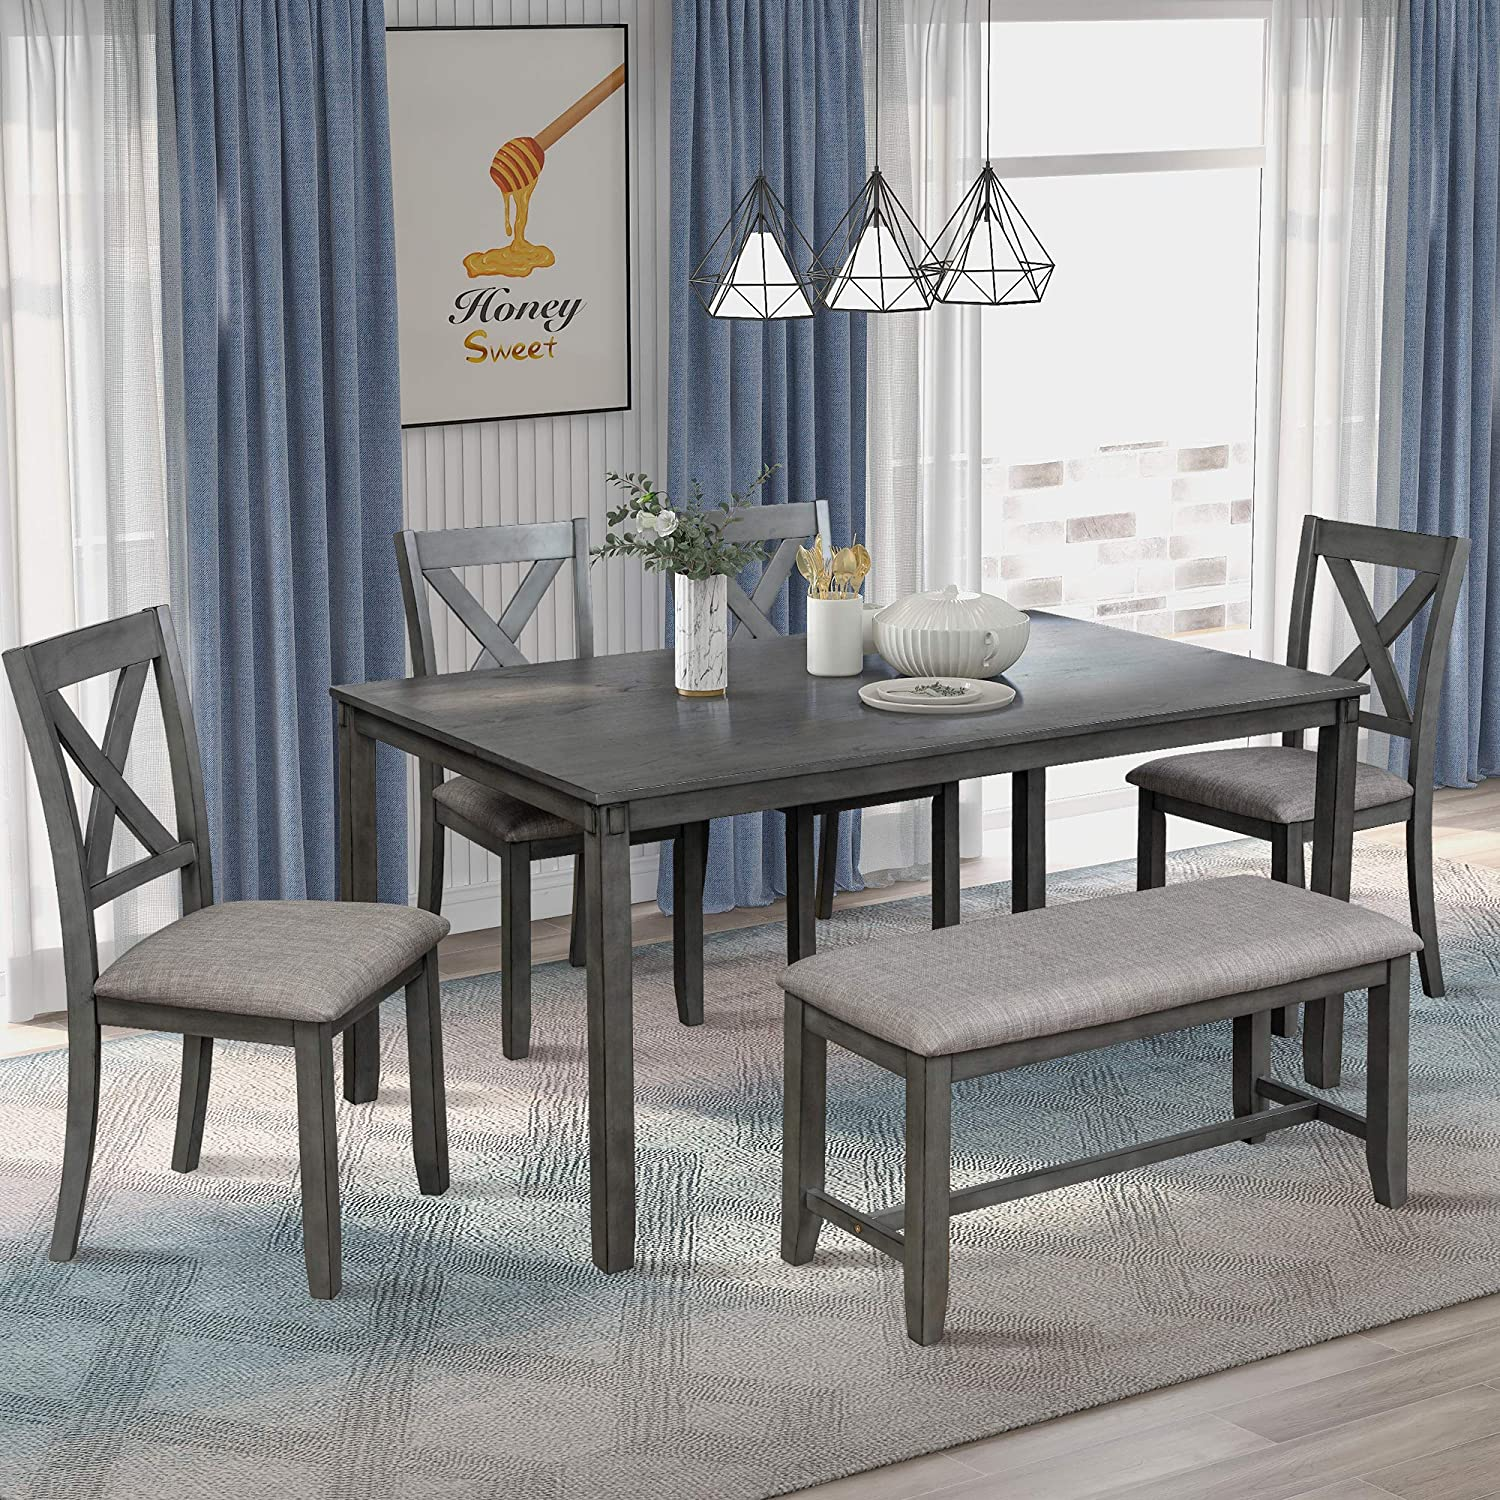 LZ LEISURE ZONE 9 Piece Wooden Dining Table Set with Bench and 9 Dining  Chairs, Kitchen Table Set Family Furniture for 9 People Grey